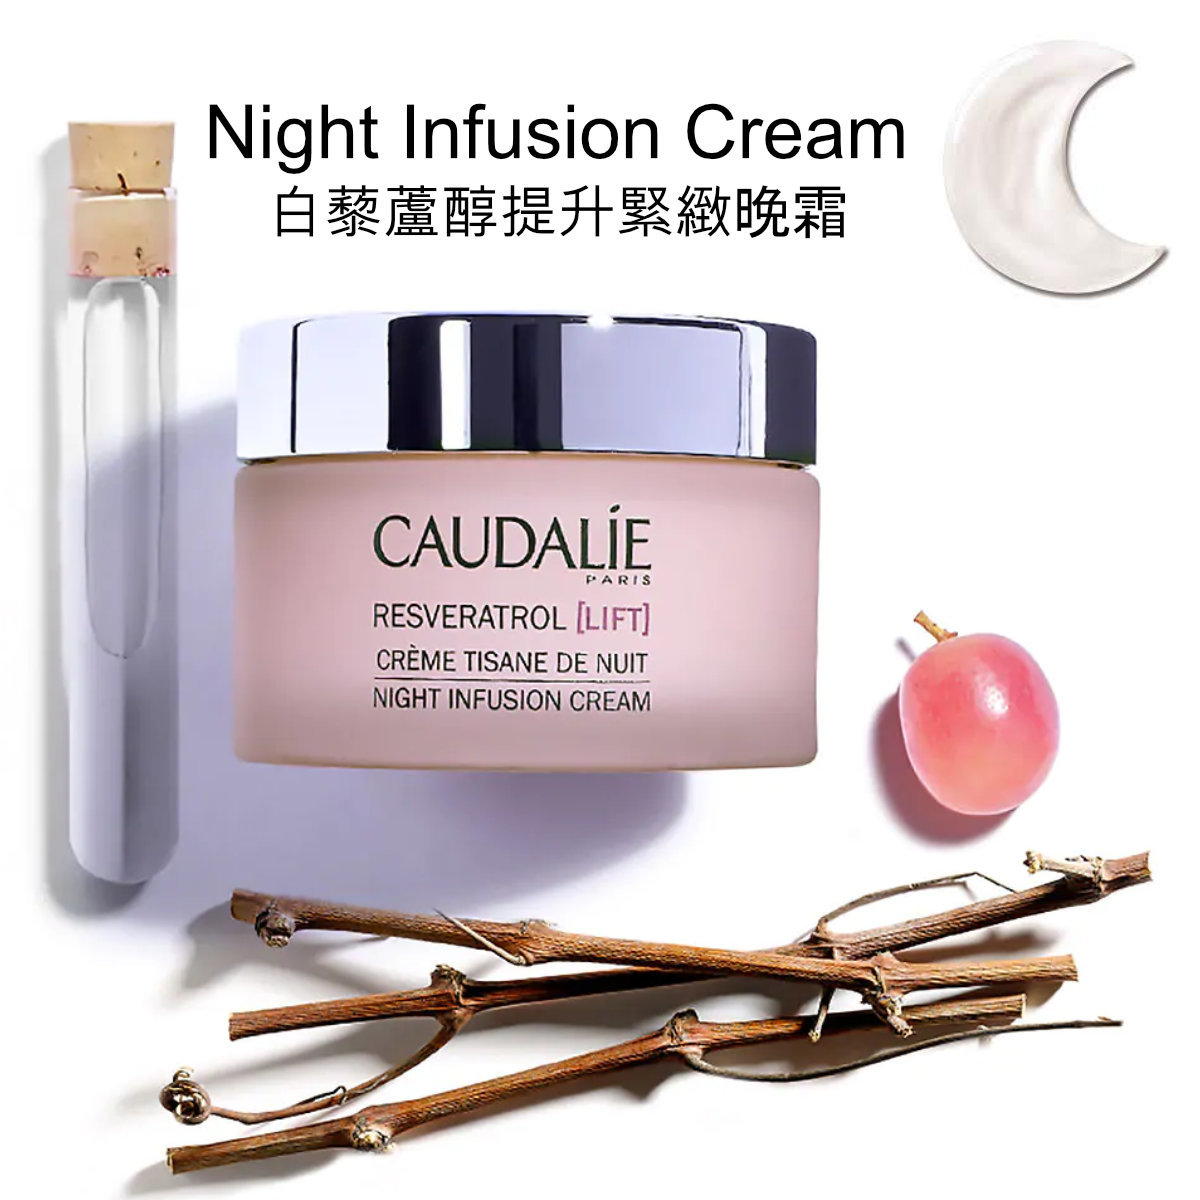 Resveratrol [Lift] Night Infusion Cream 50ml